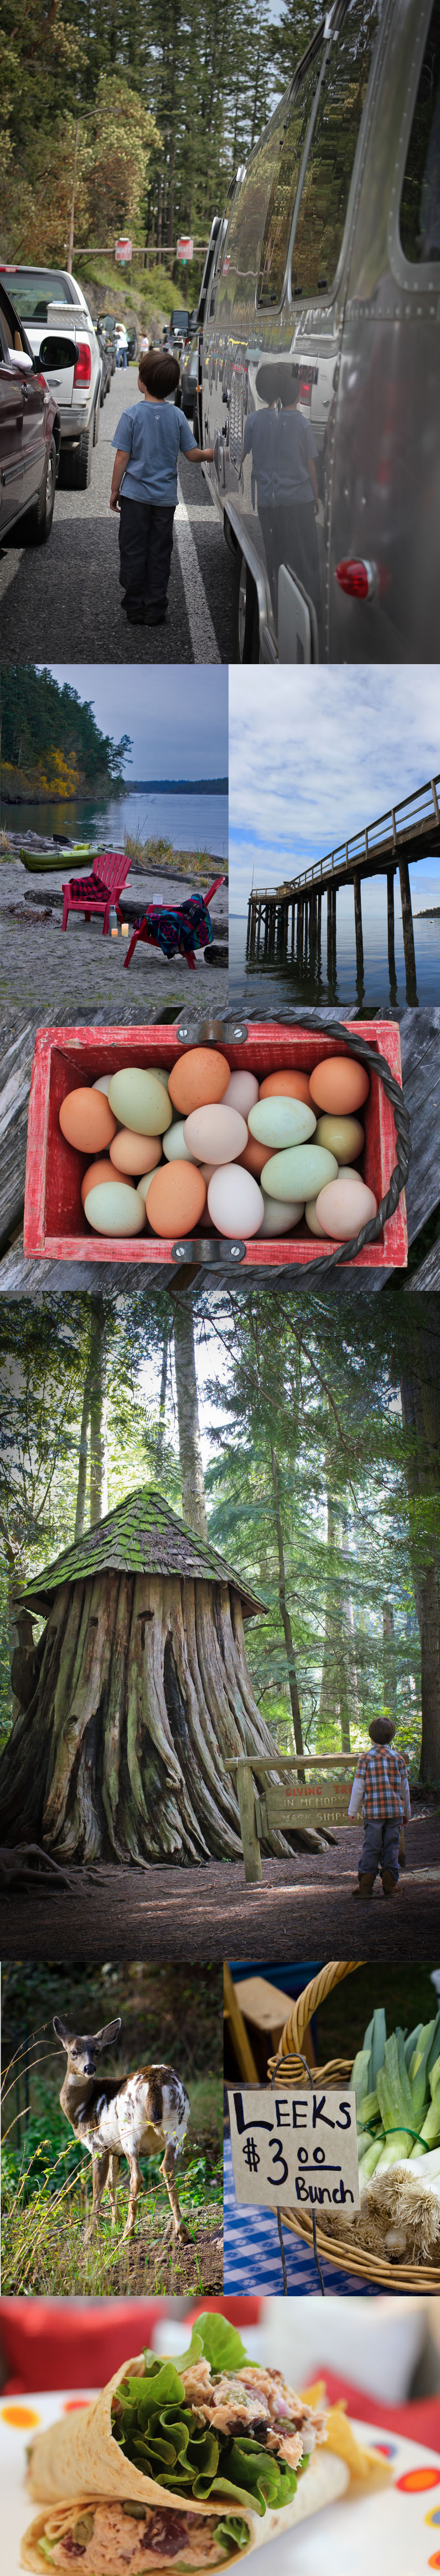 Orcas Island, Farms and a very special Giving Tree